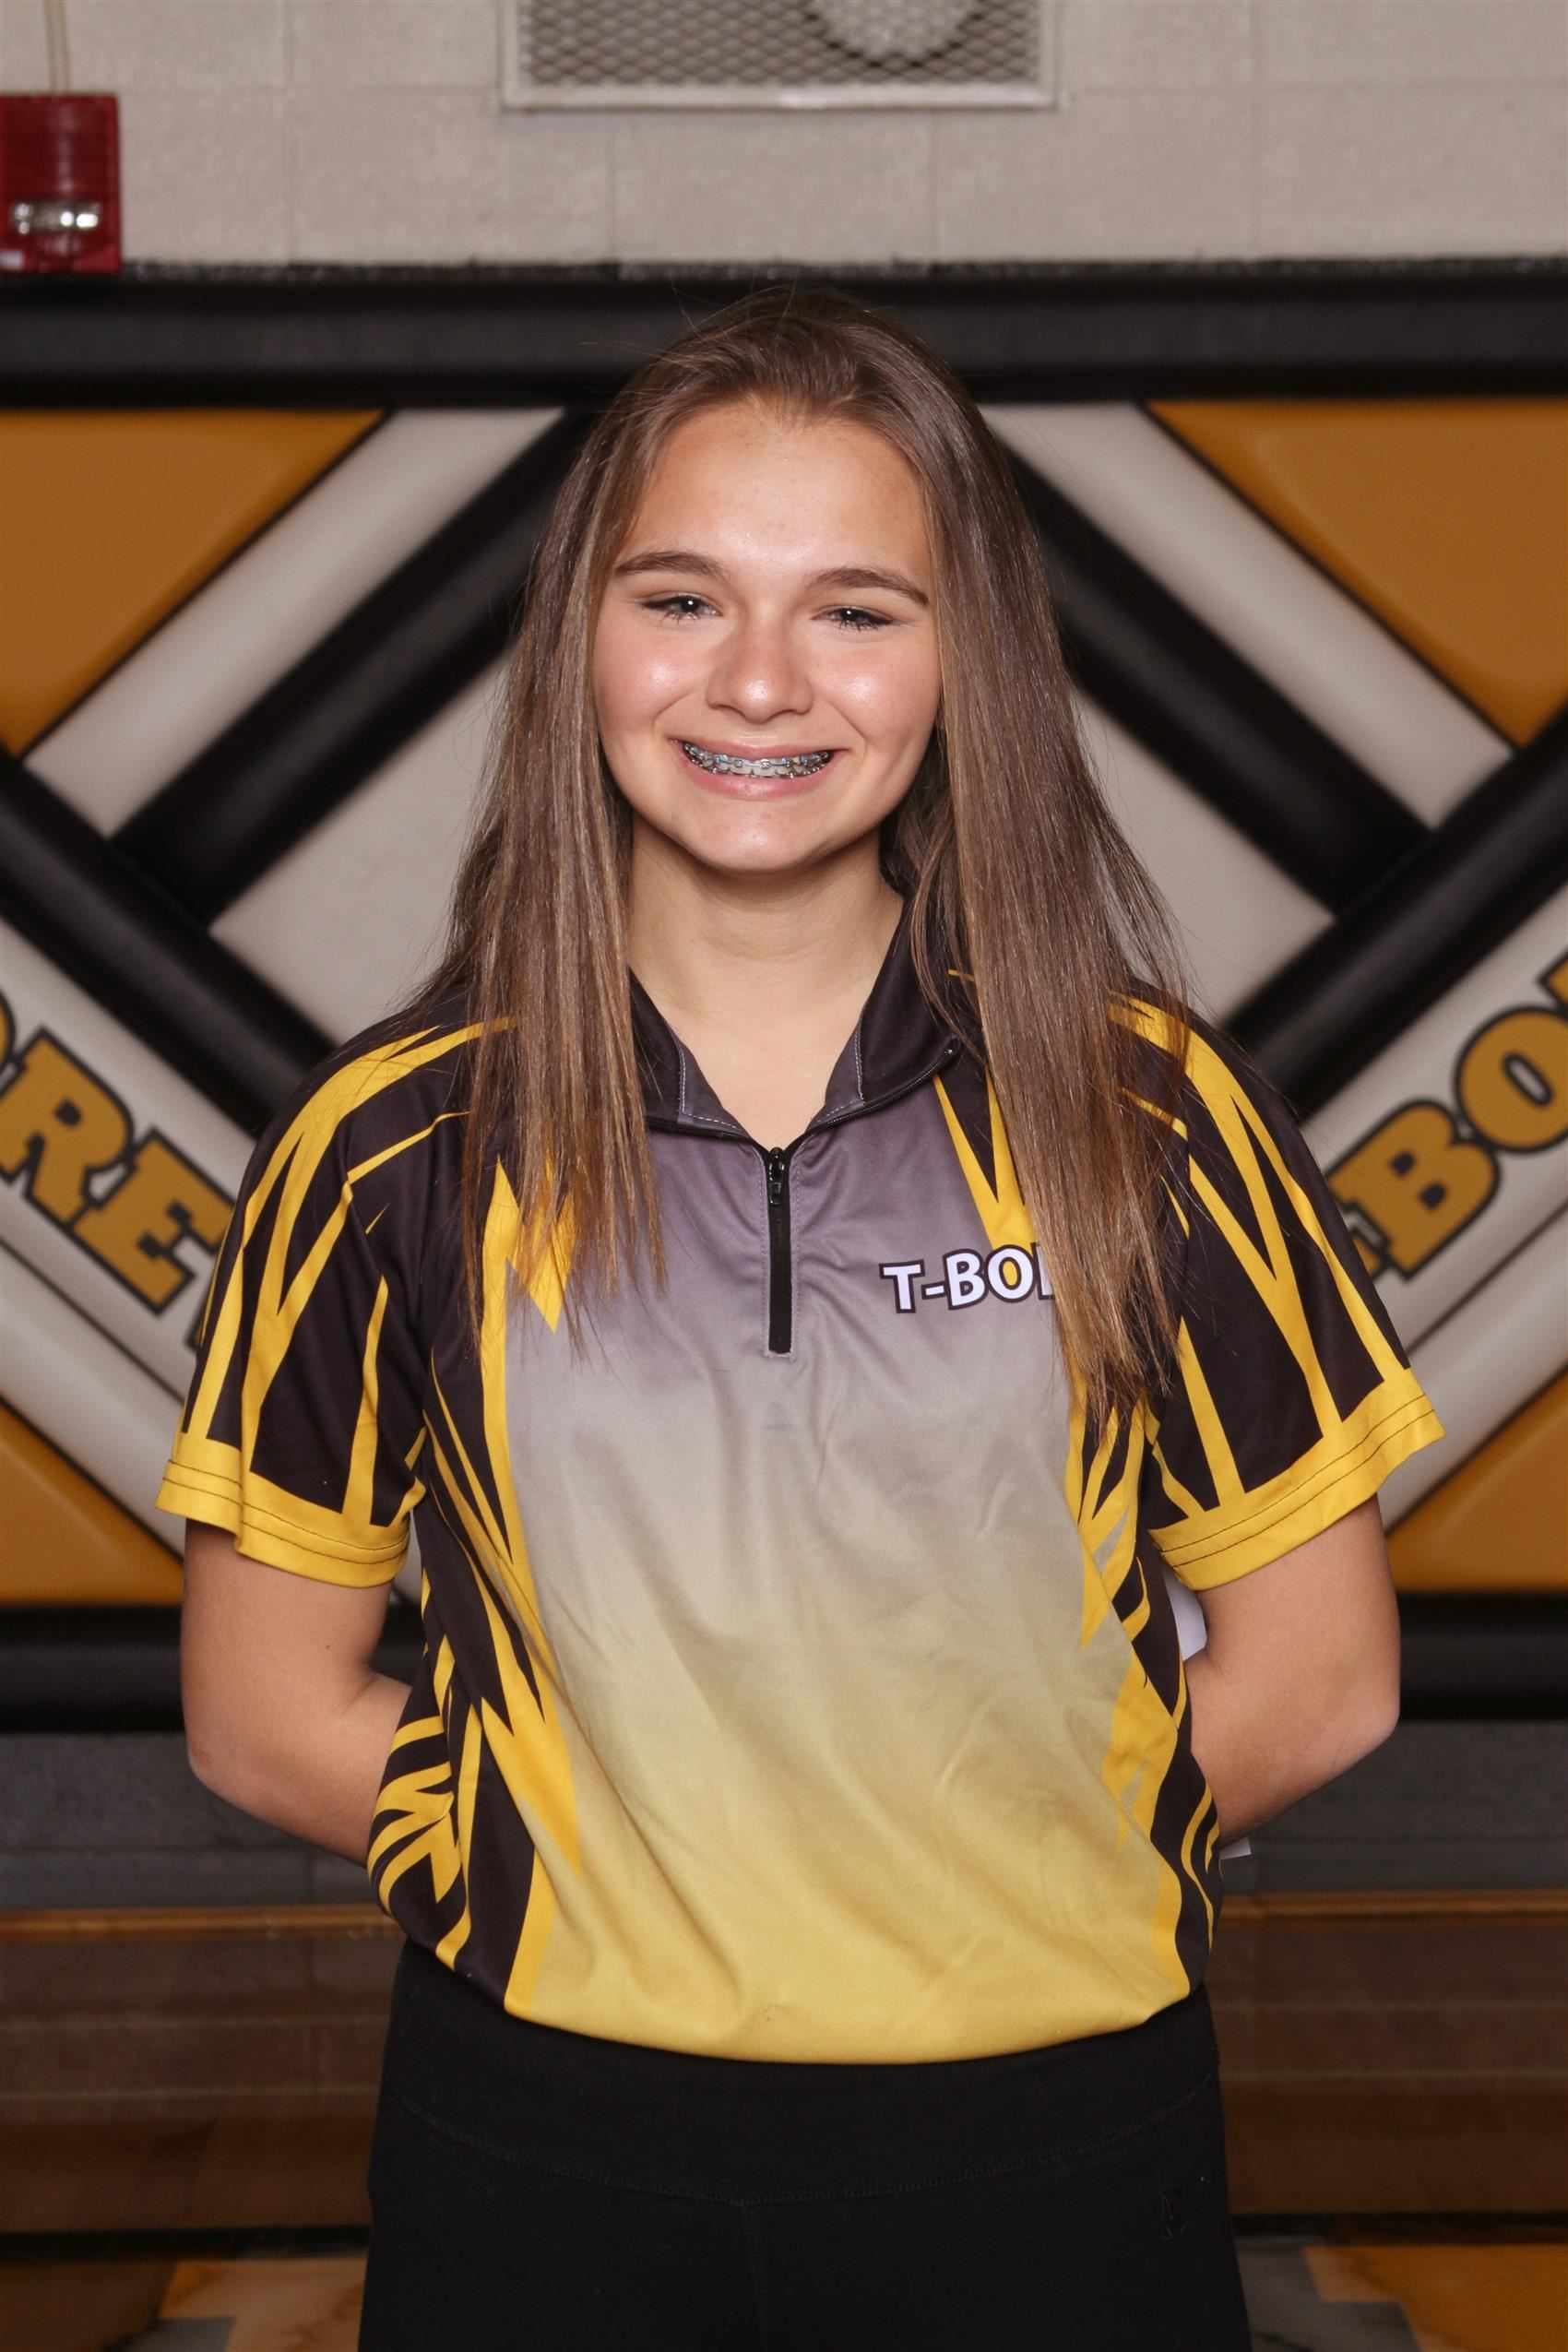 Bryanna Battles - Bowling / Athlete of the Week of November 16